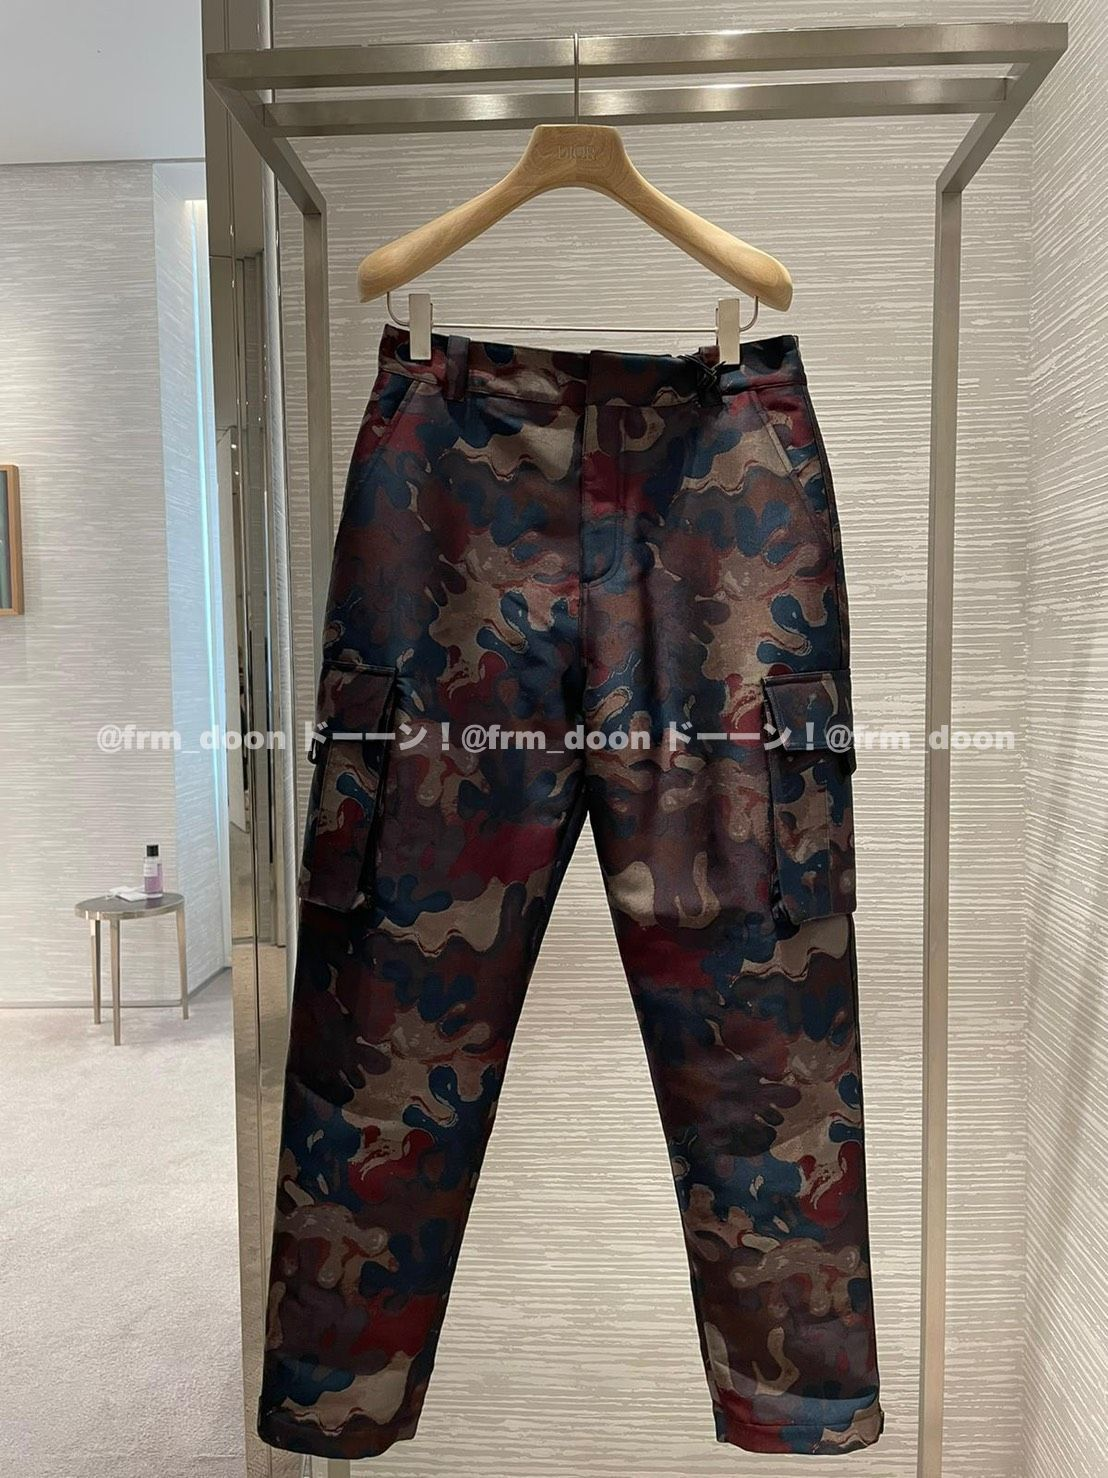 【Dior】21/22AW DIOR AND PETER DOIG カーゴパンツ/ カムフラ (Dior/カーゴパンツ) 013C101A5336_C783  013C122A5336_C783